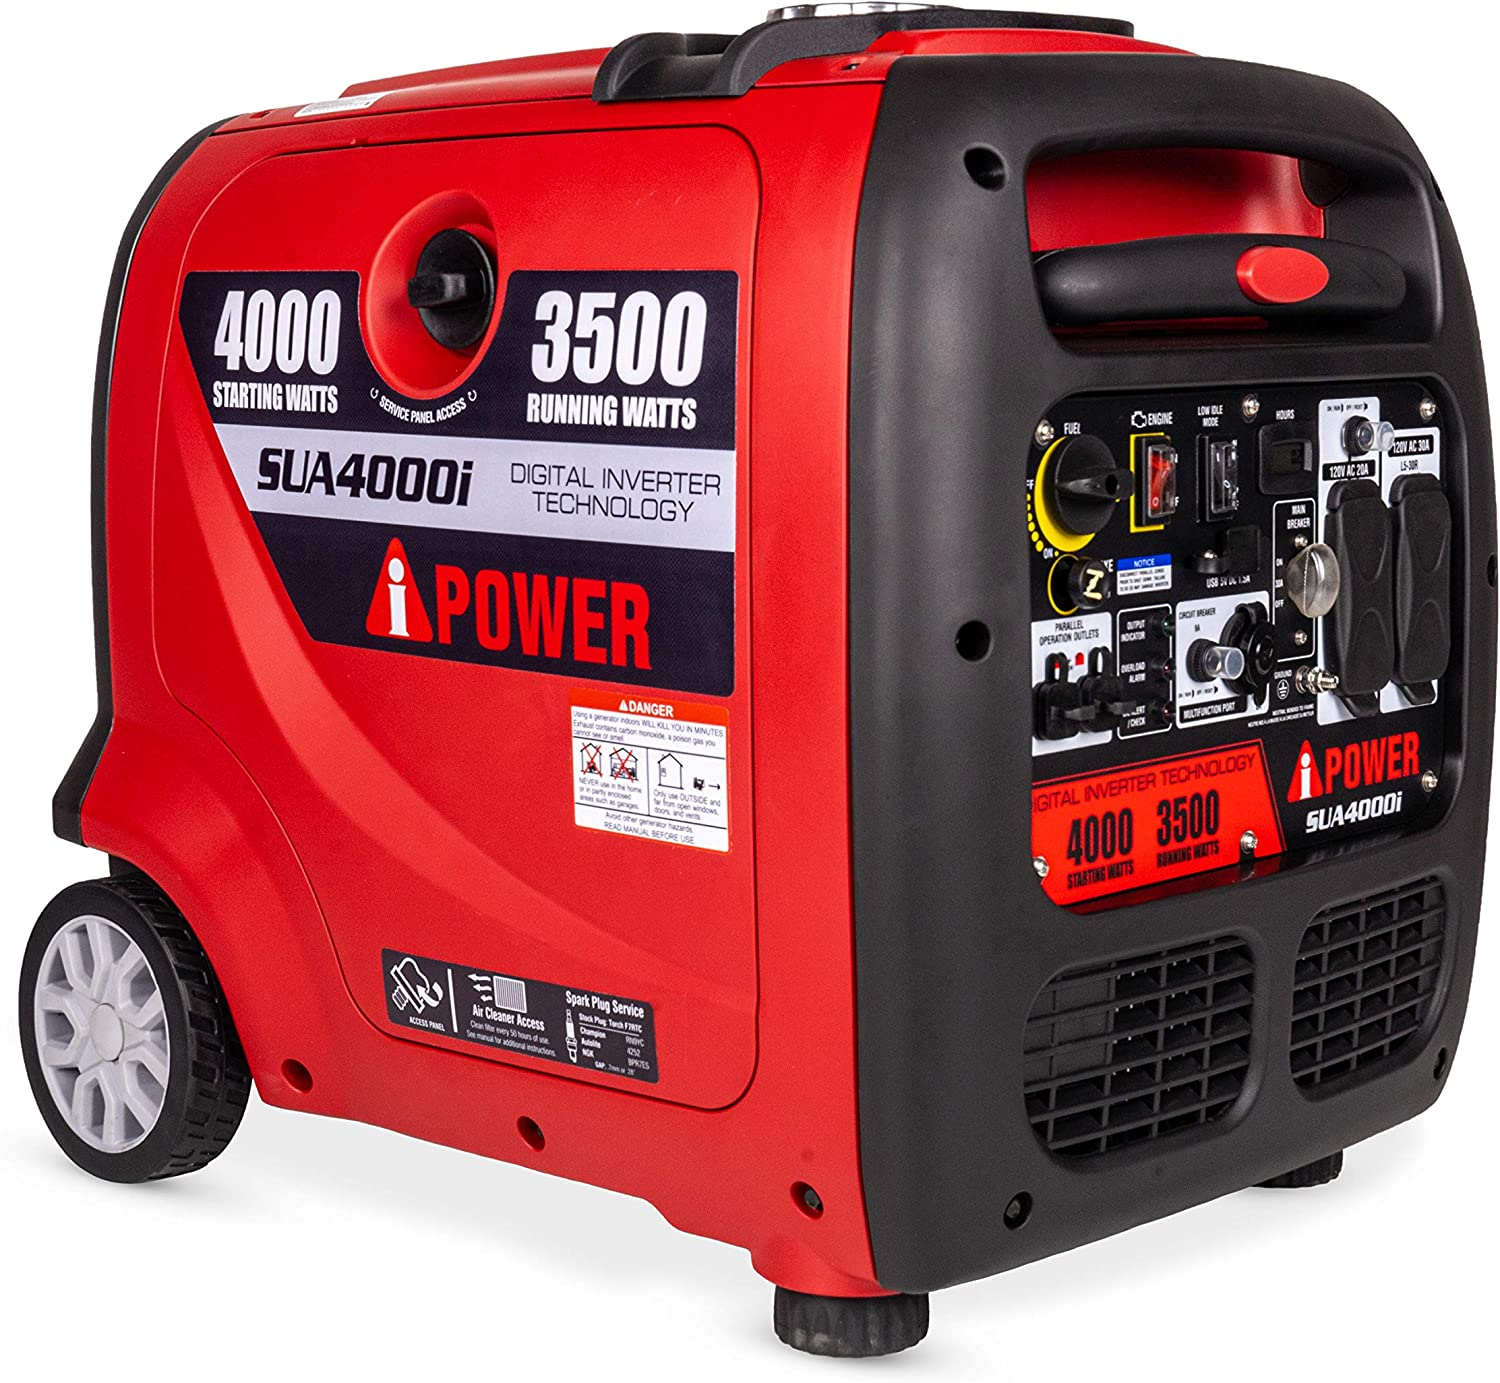 Top 10 Best Generators For Home Use Review (2021) 2